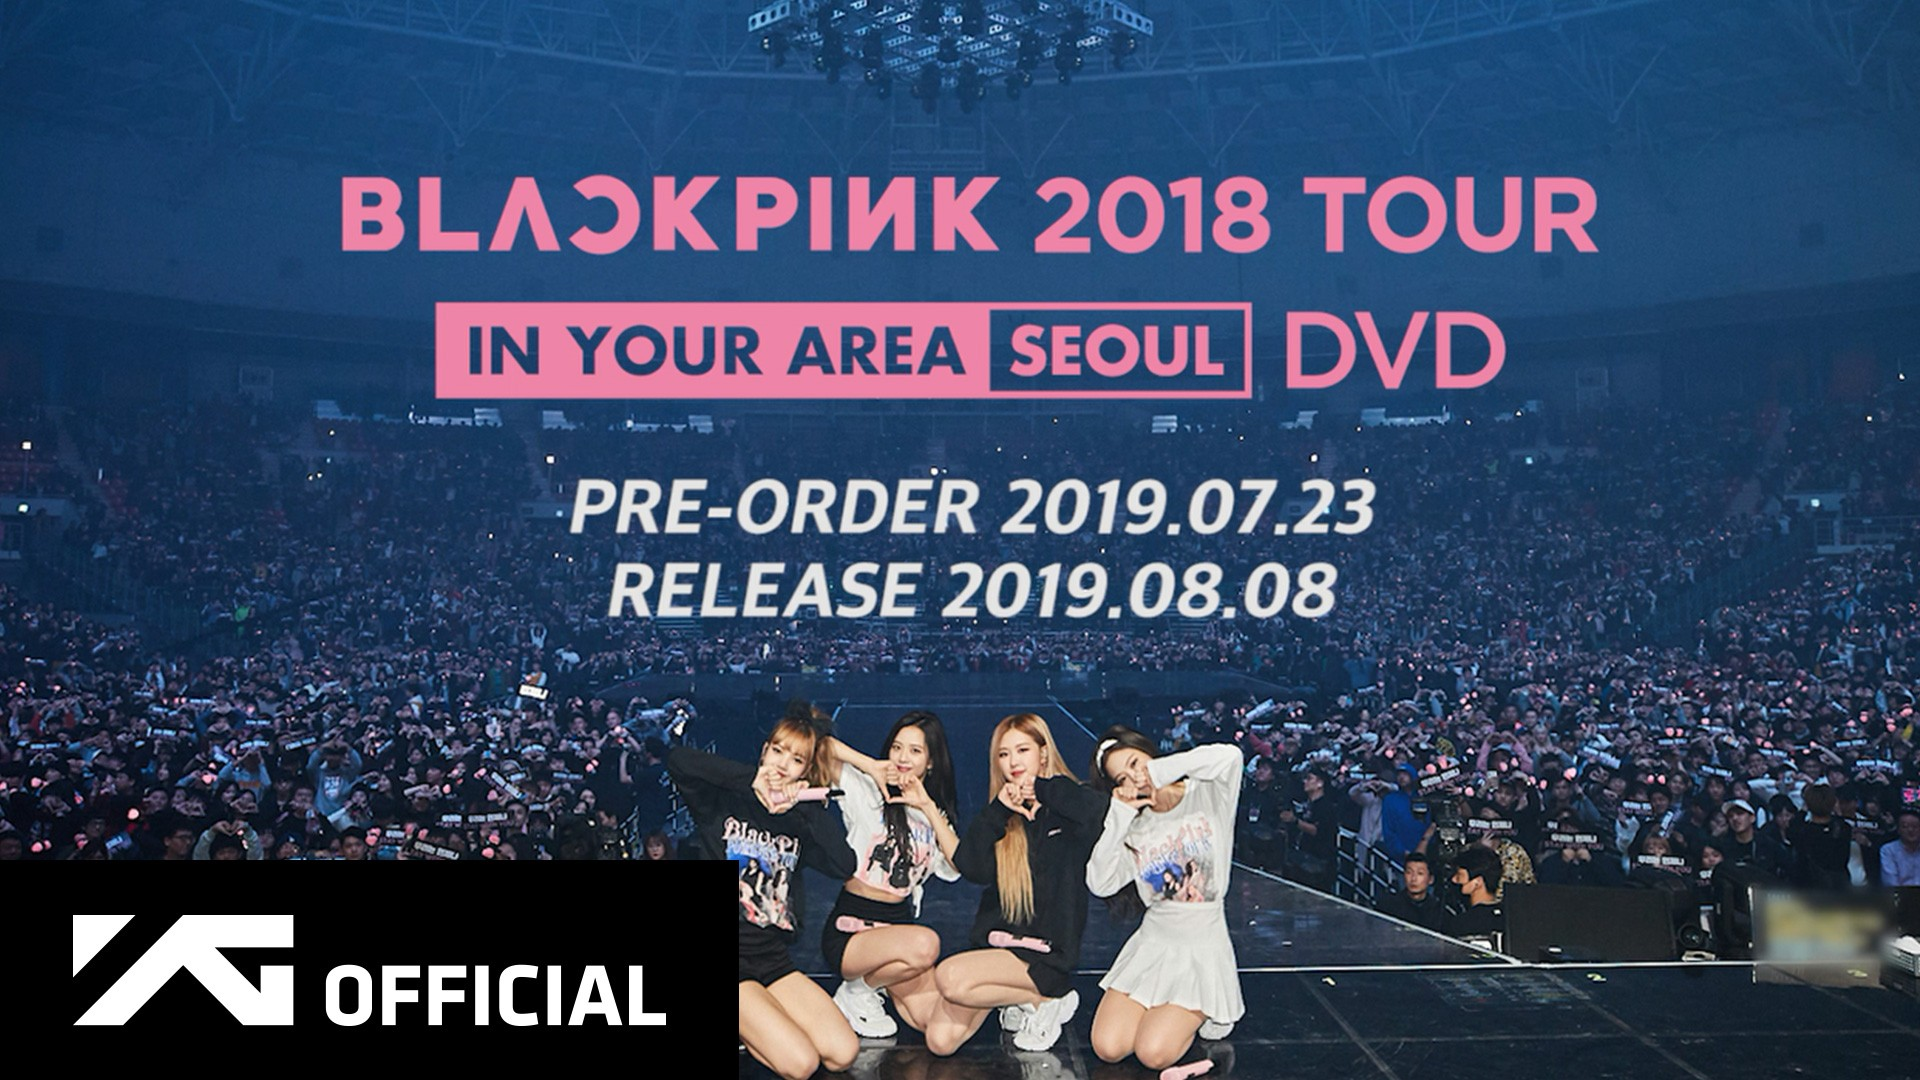 BLACKPINK - 2018 TOUR [IN YOUR AREA] SEOUL DVD